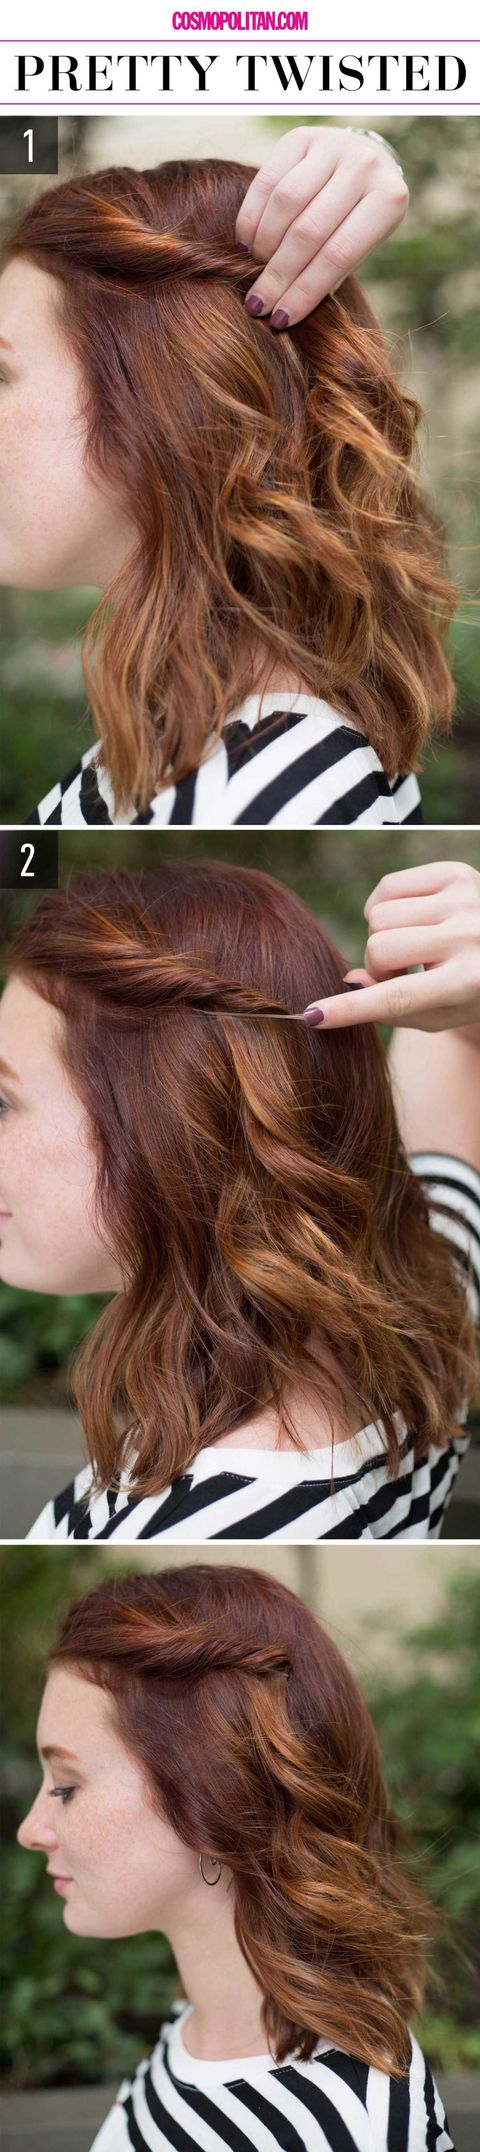 15 super easy hairstyles for 2018 three step hairstyles for girls pretty twisted solutioingenieria Choice Image